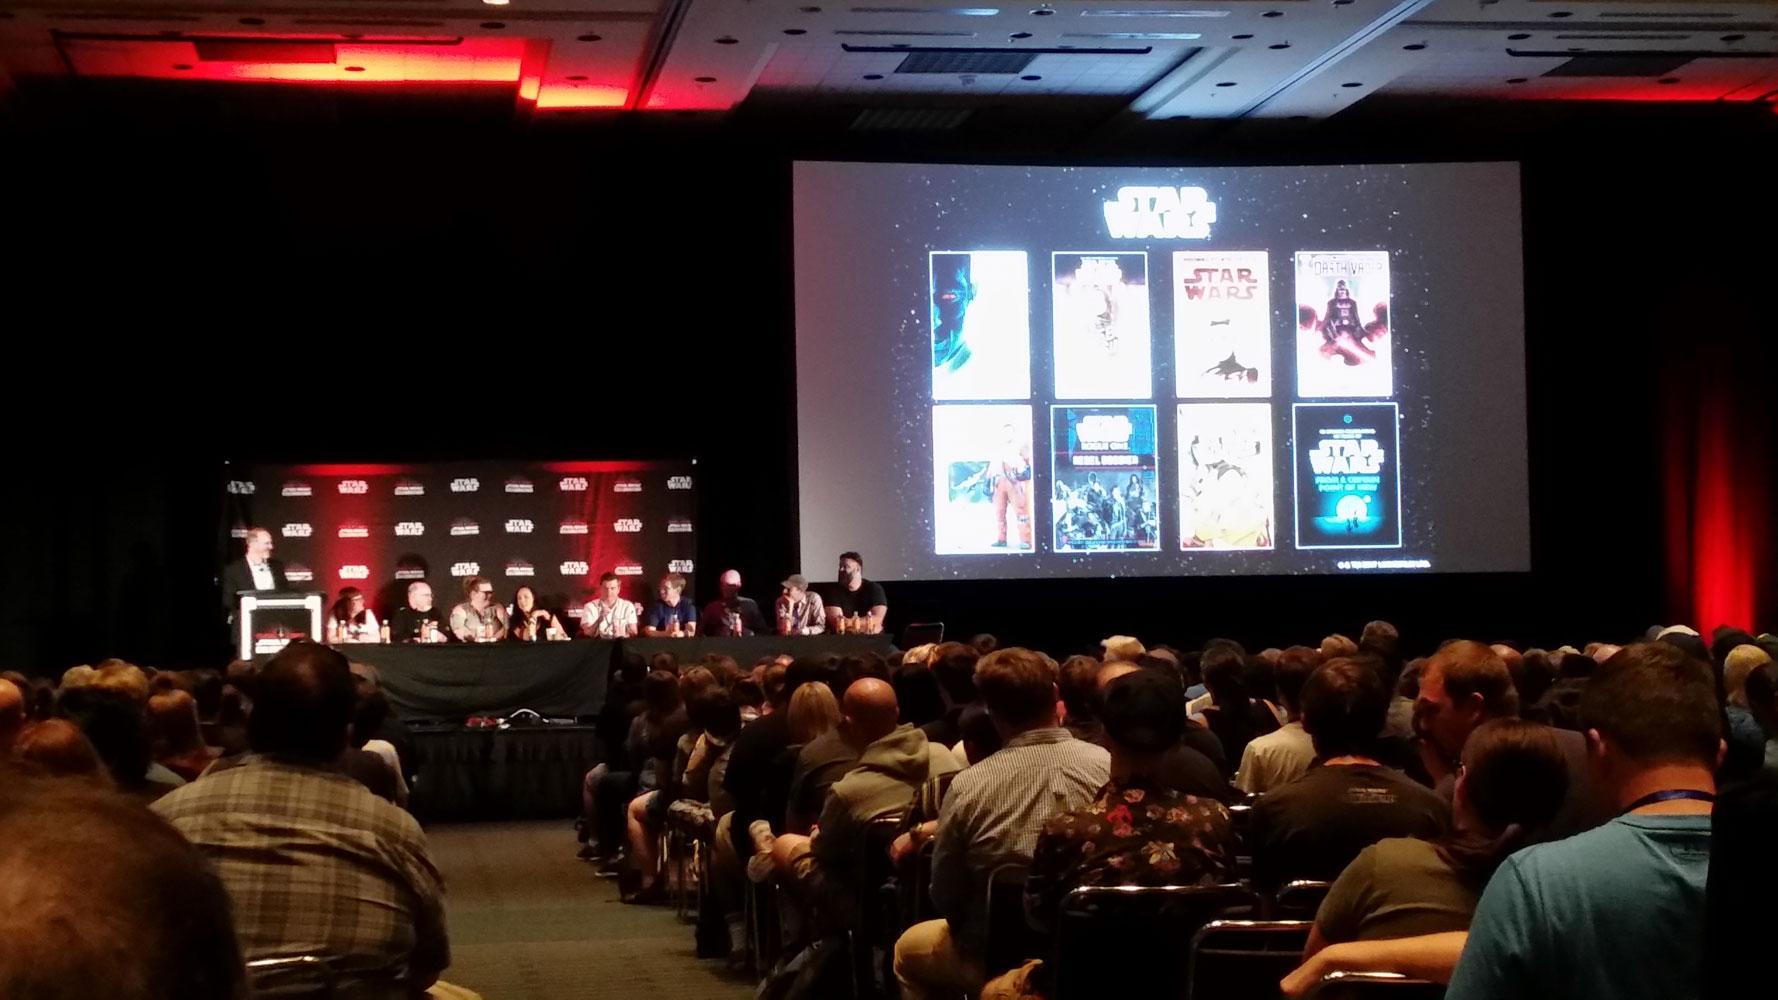 Star Wars comic books and books panel